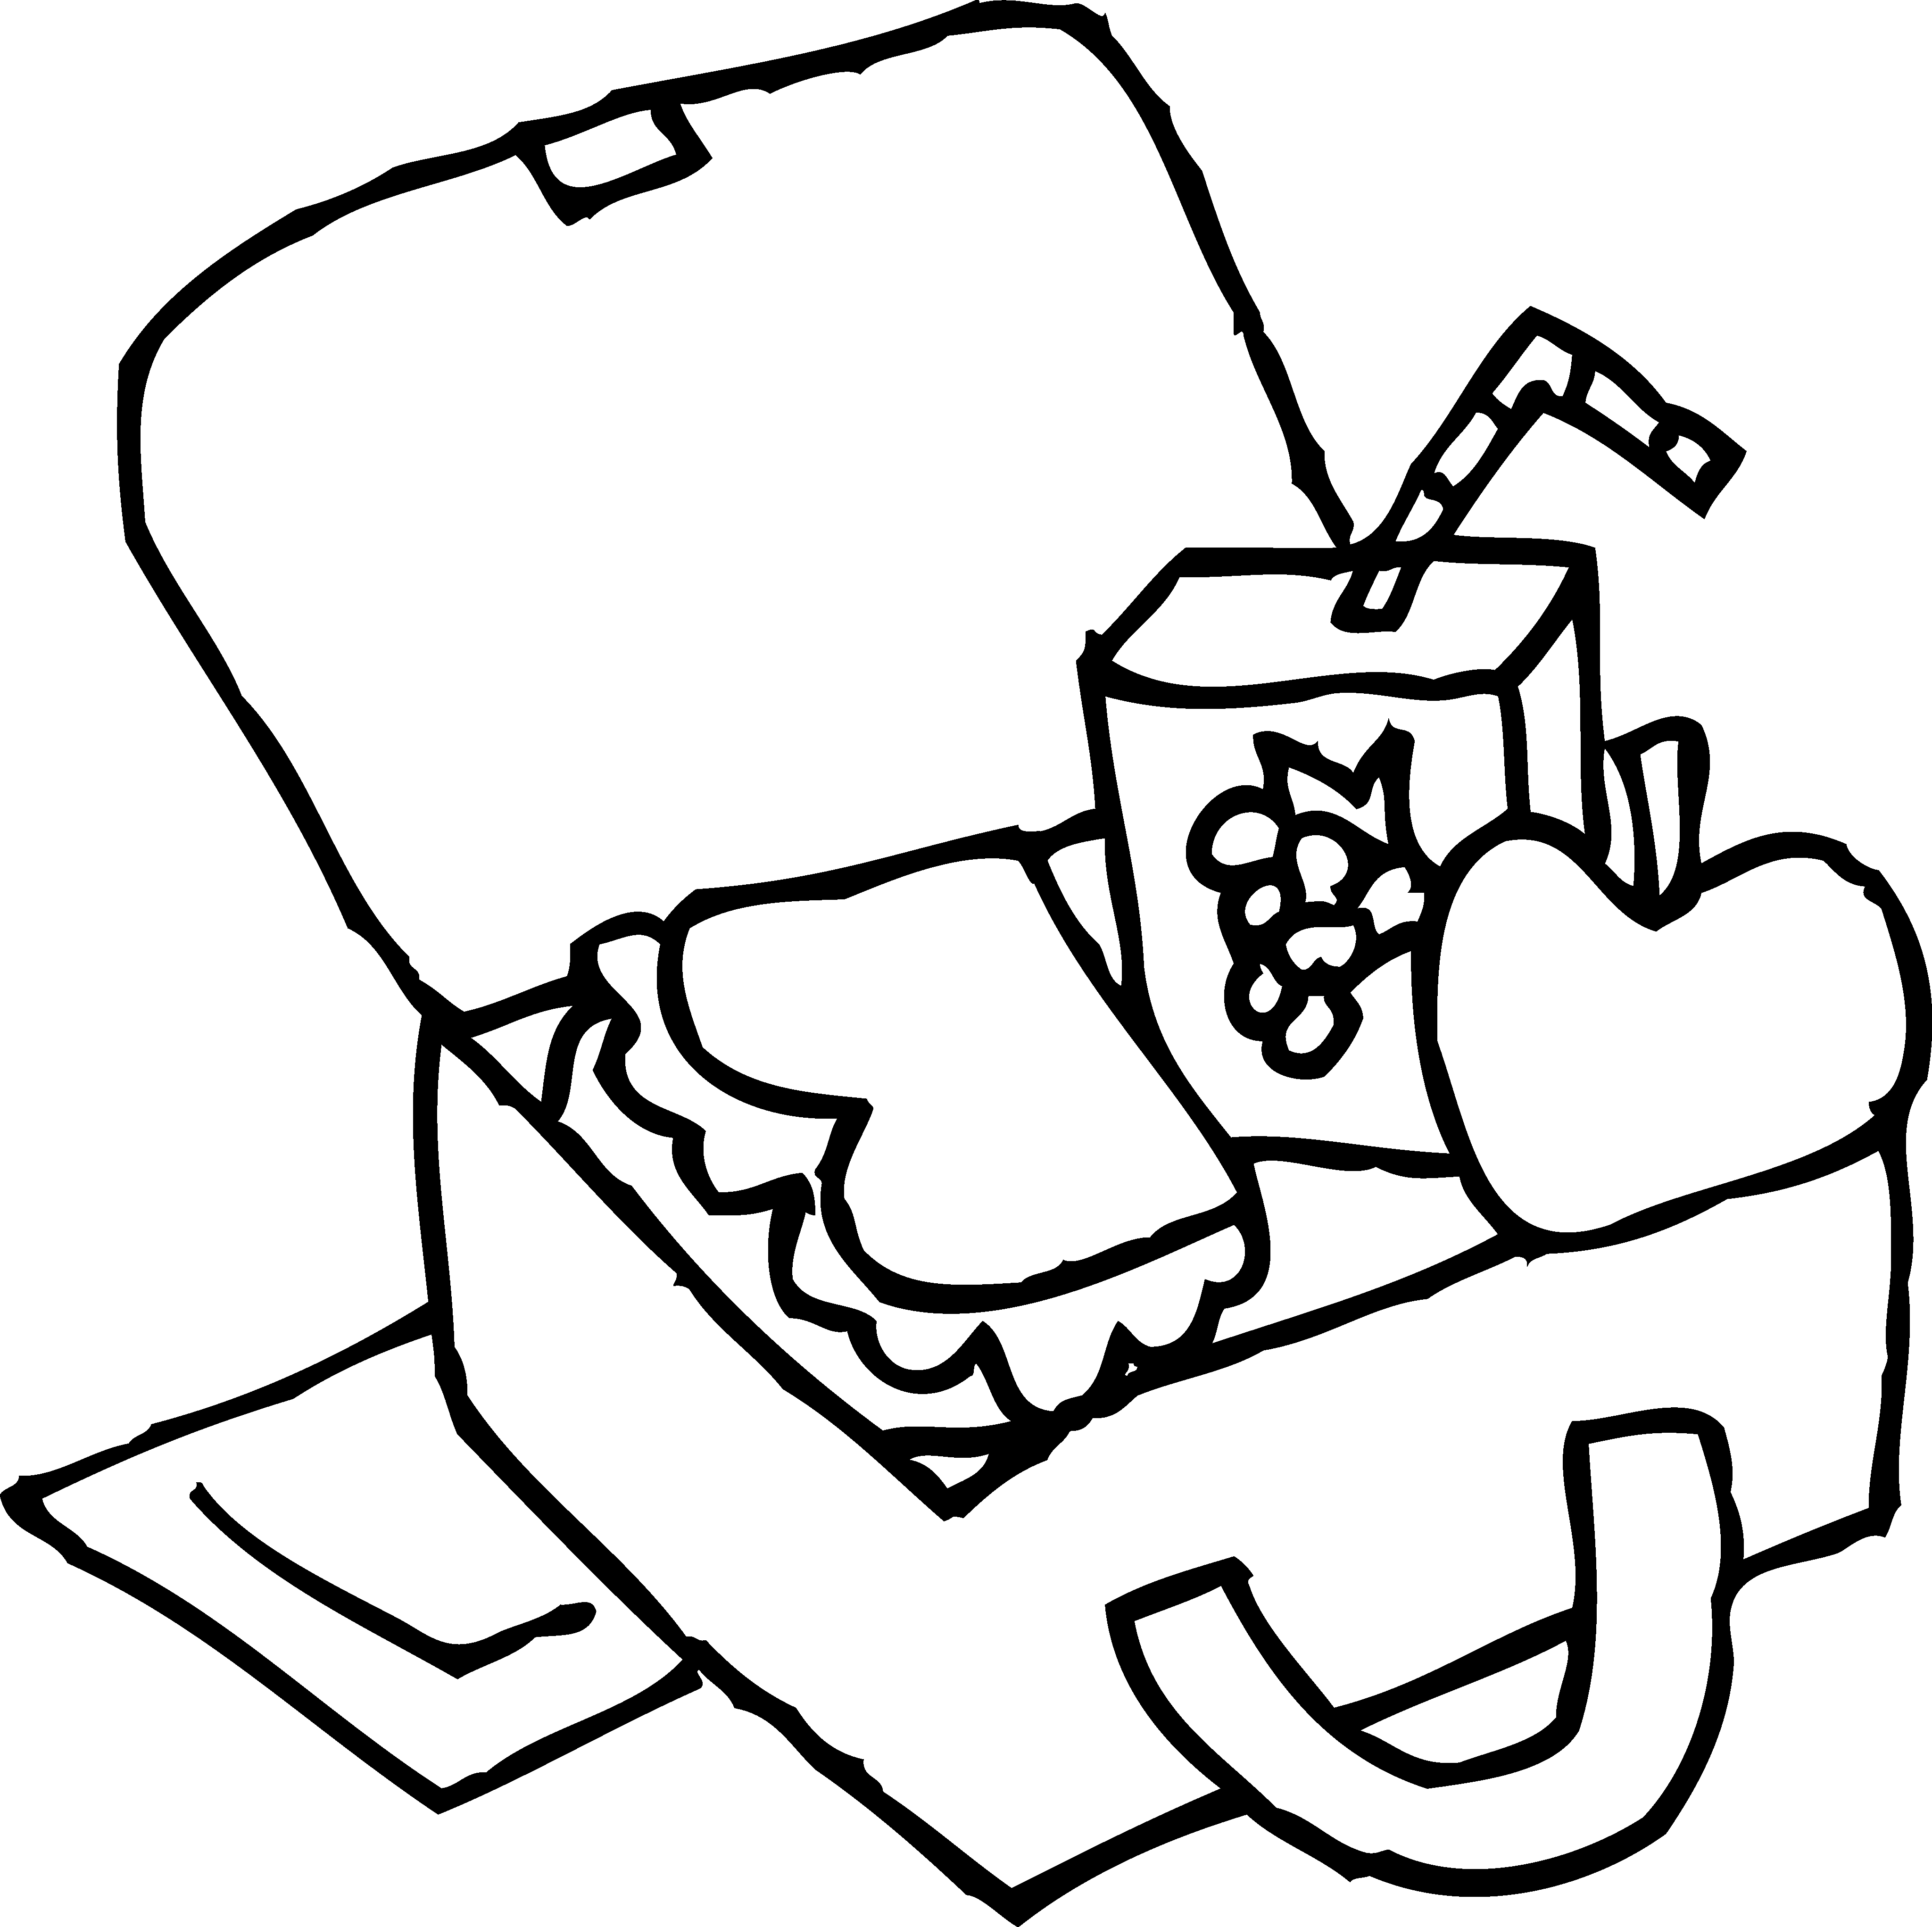 Lunch clipart 9 2